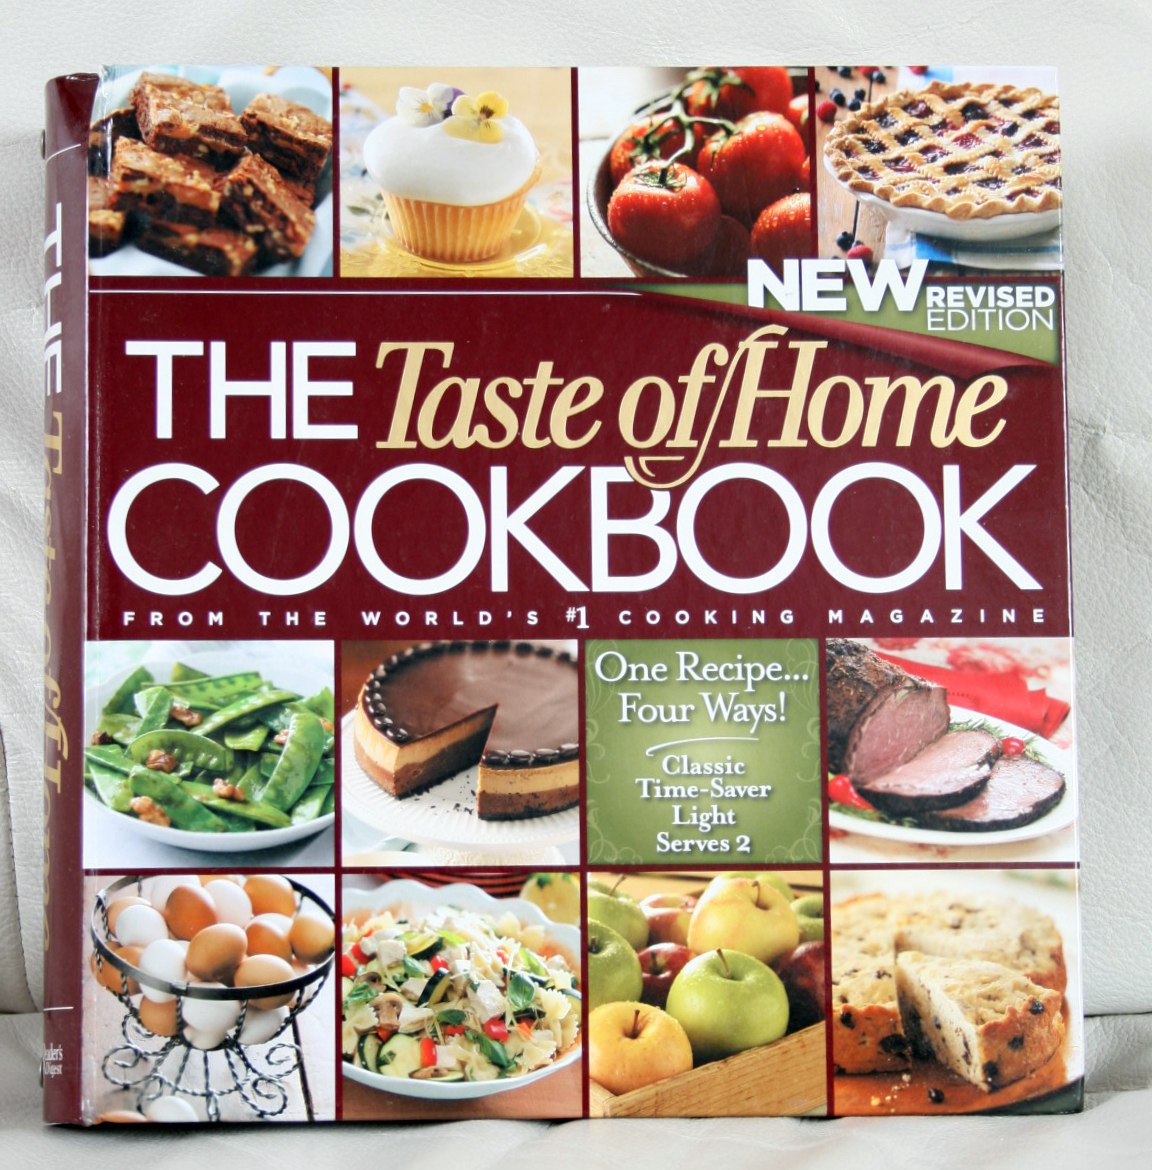 The Taste of Home Cookbook by Readers Digest